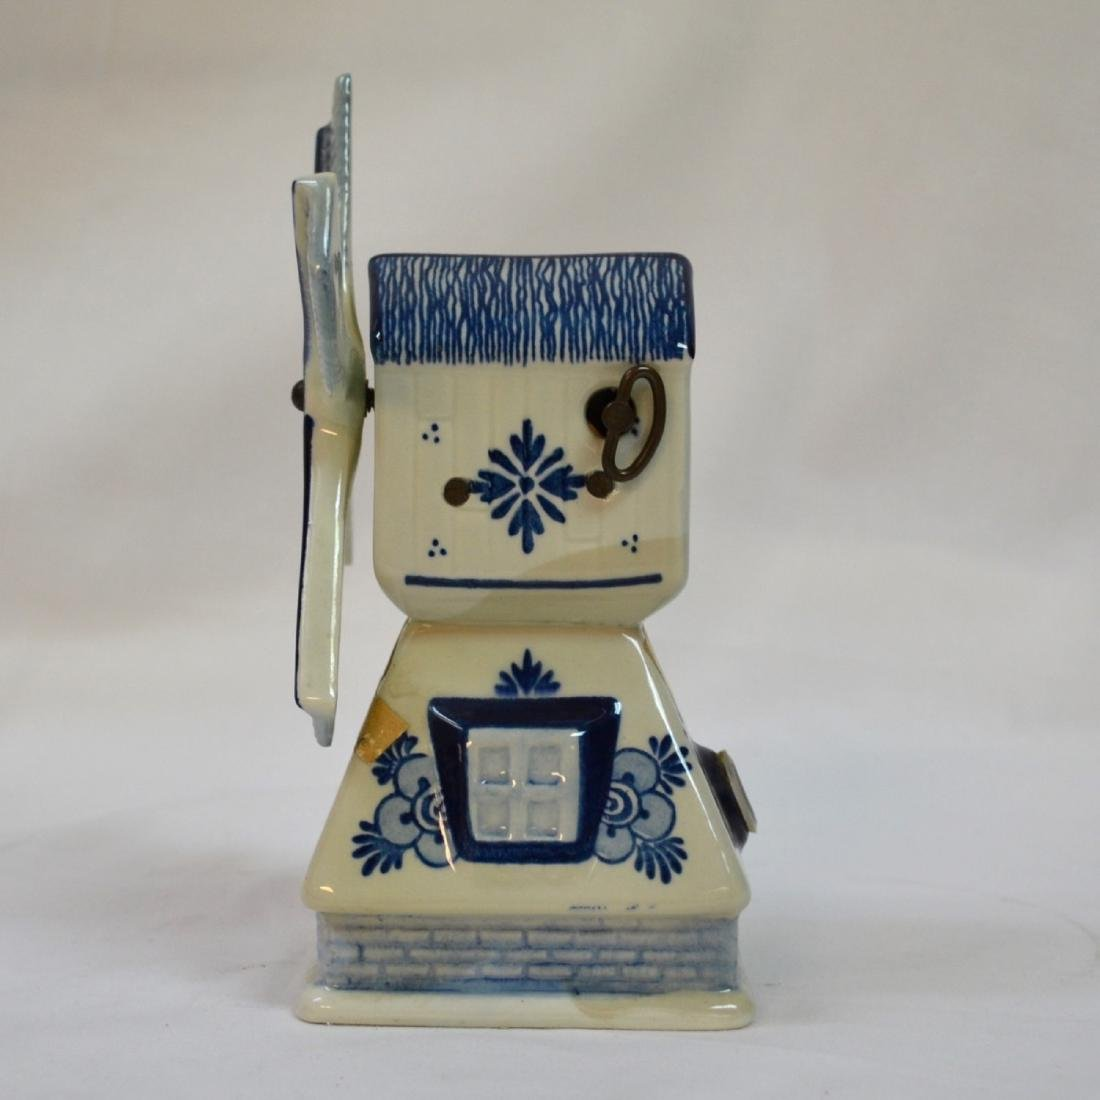 RYNBENDE WINDMILL ANND 1463 - DELFT BLUE - MADE IN - 2